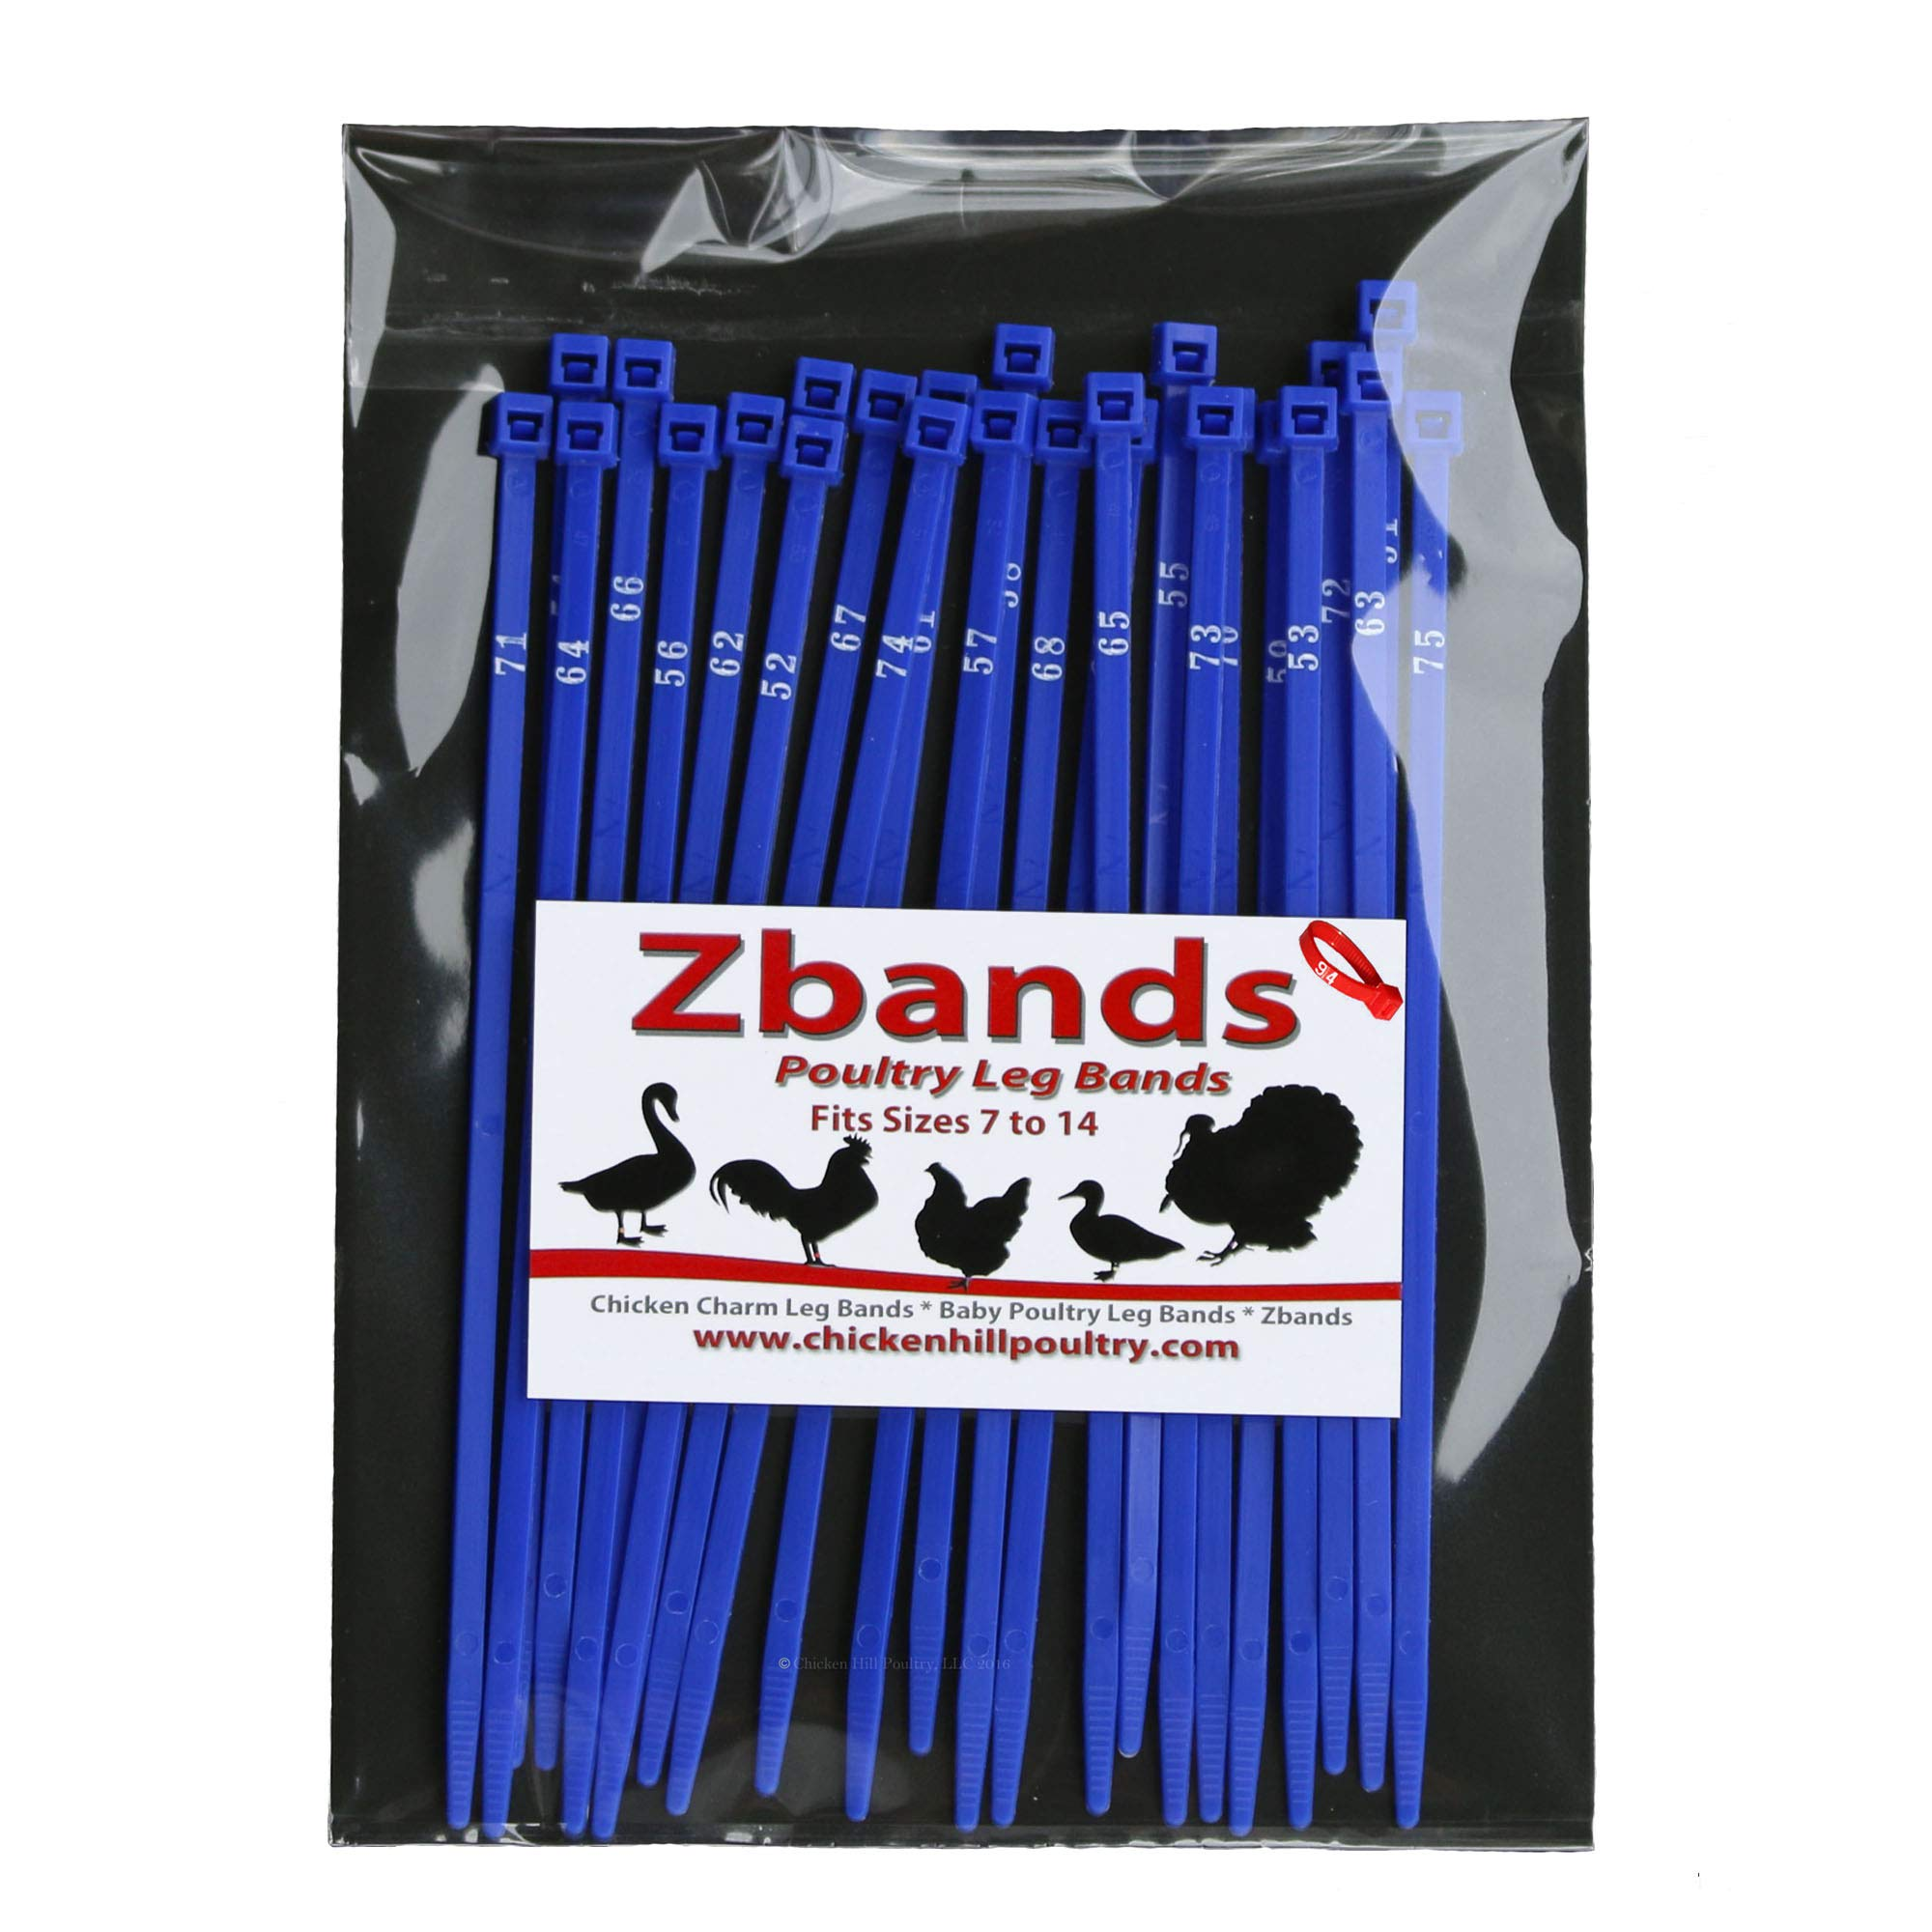 Chicken Hill 100 ZBand Numbered Poultry Leg Bands ~ Fits Sizes 6 to 14 by Chicken Hill